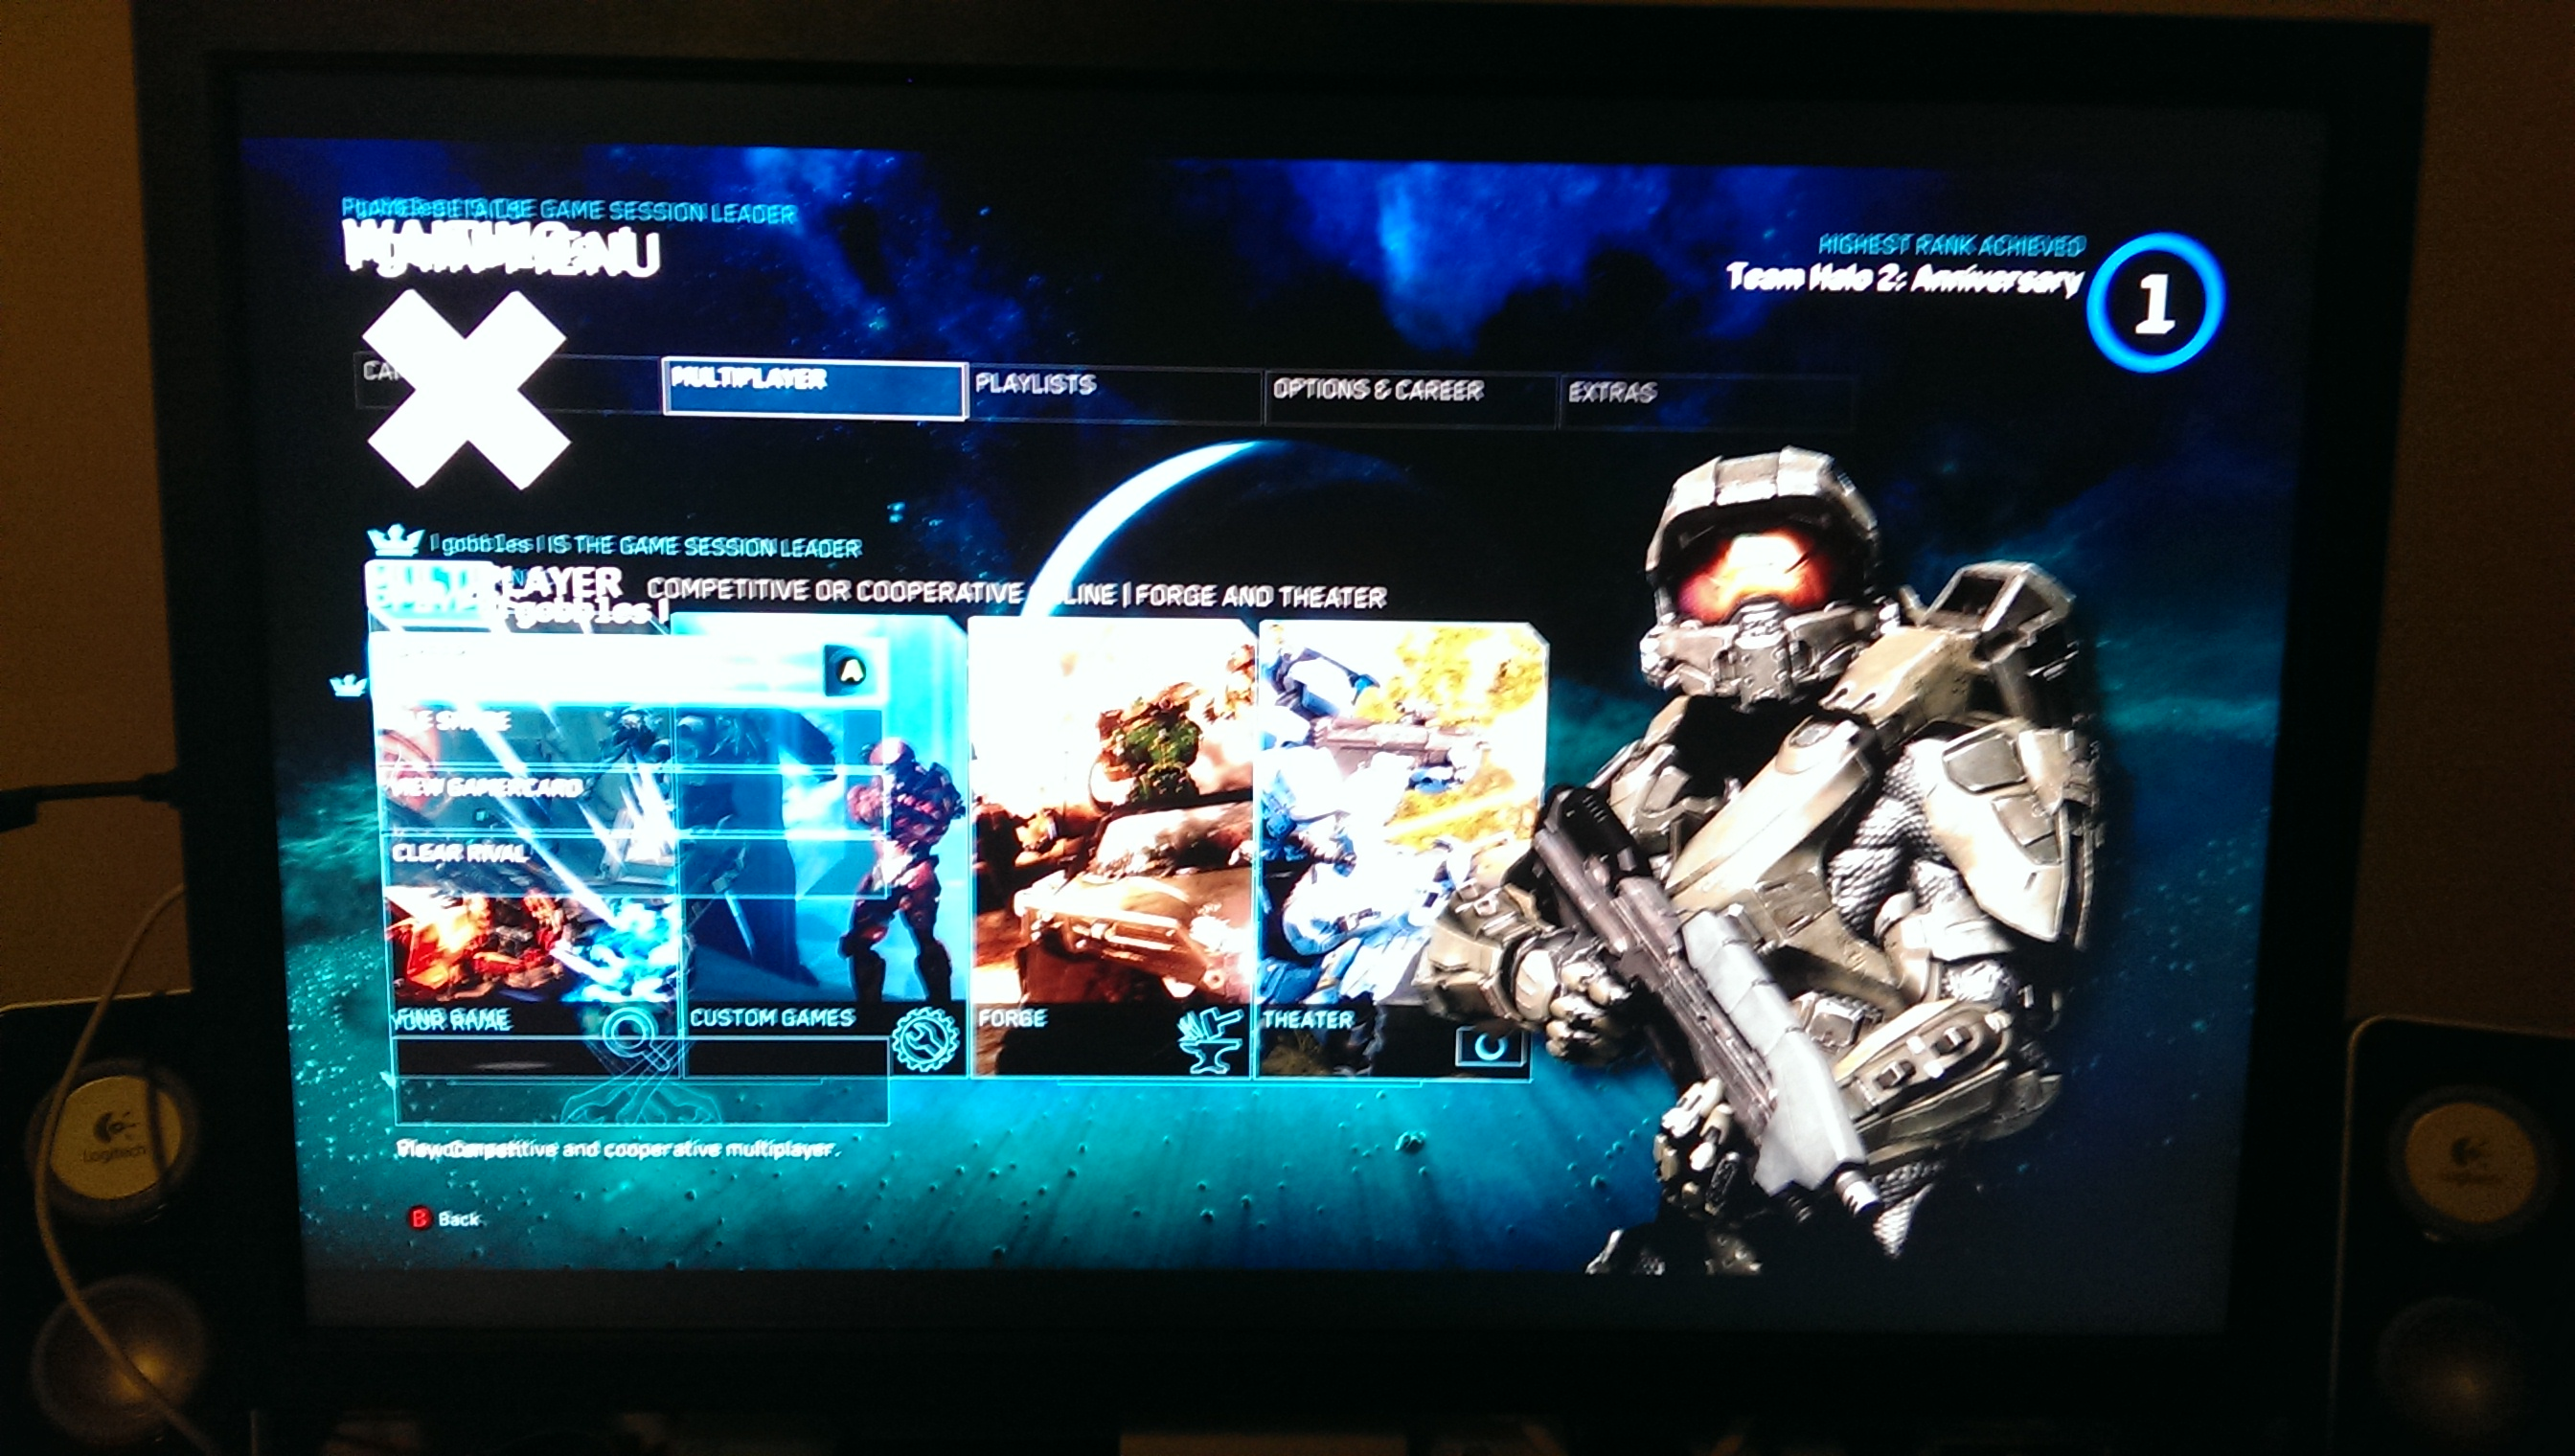 Halo MCC: Bug hunting « Chris Valleskey